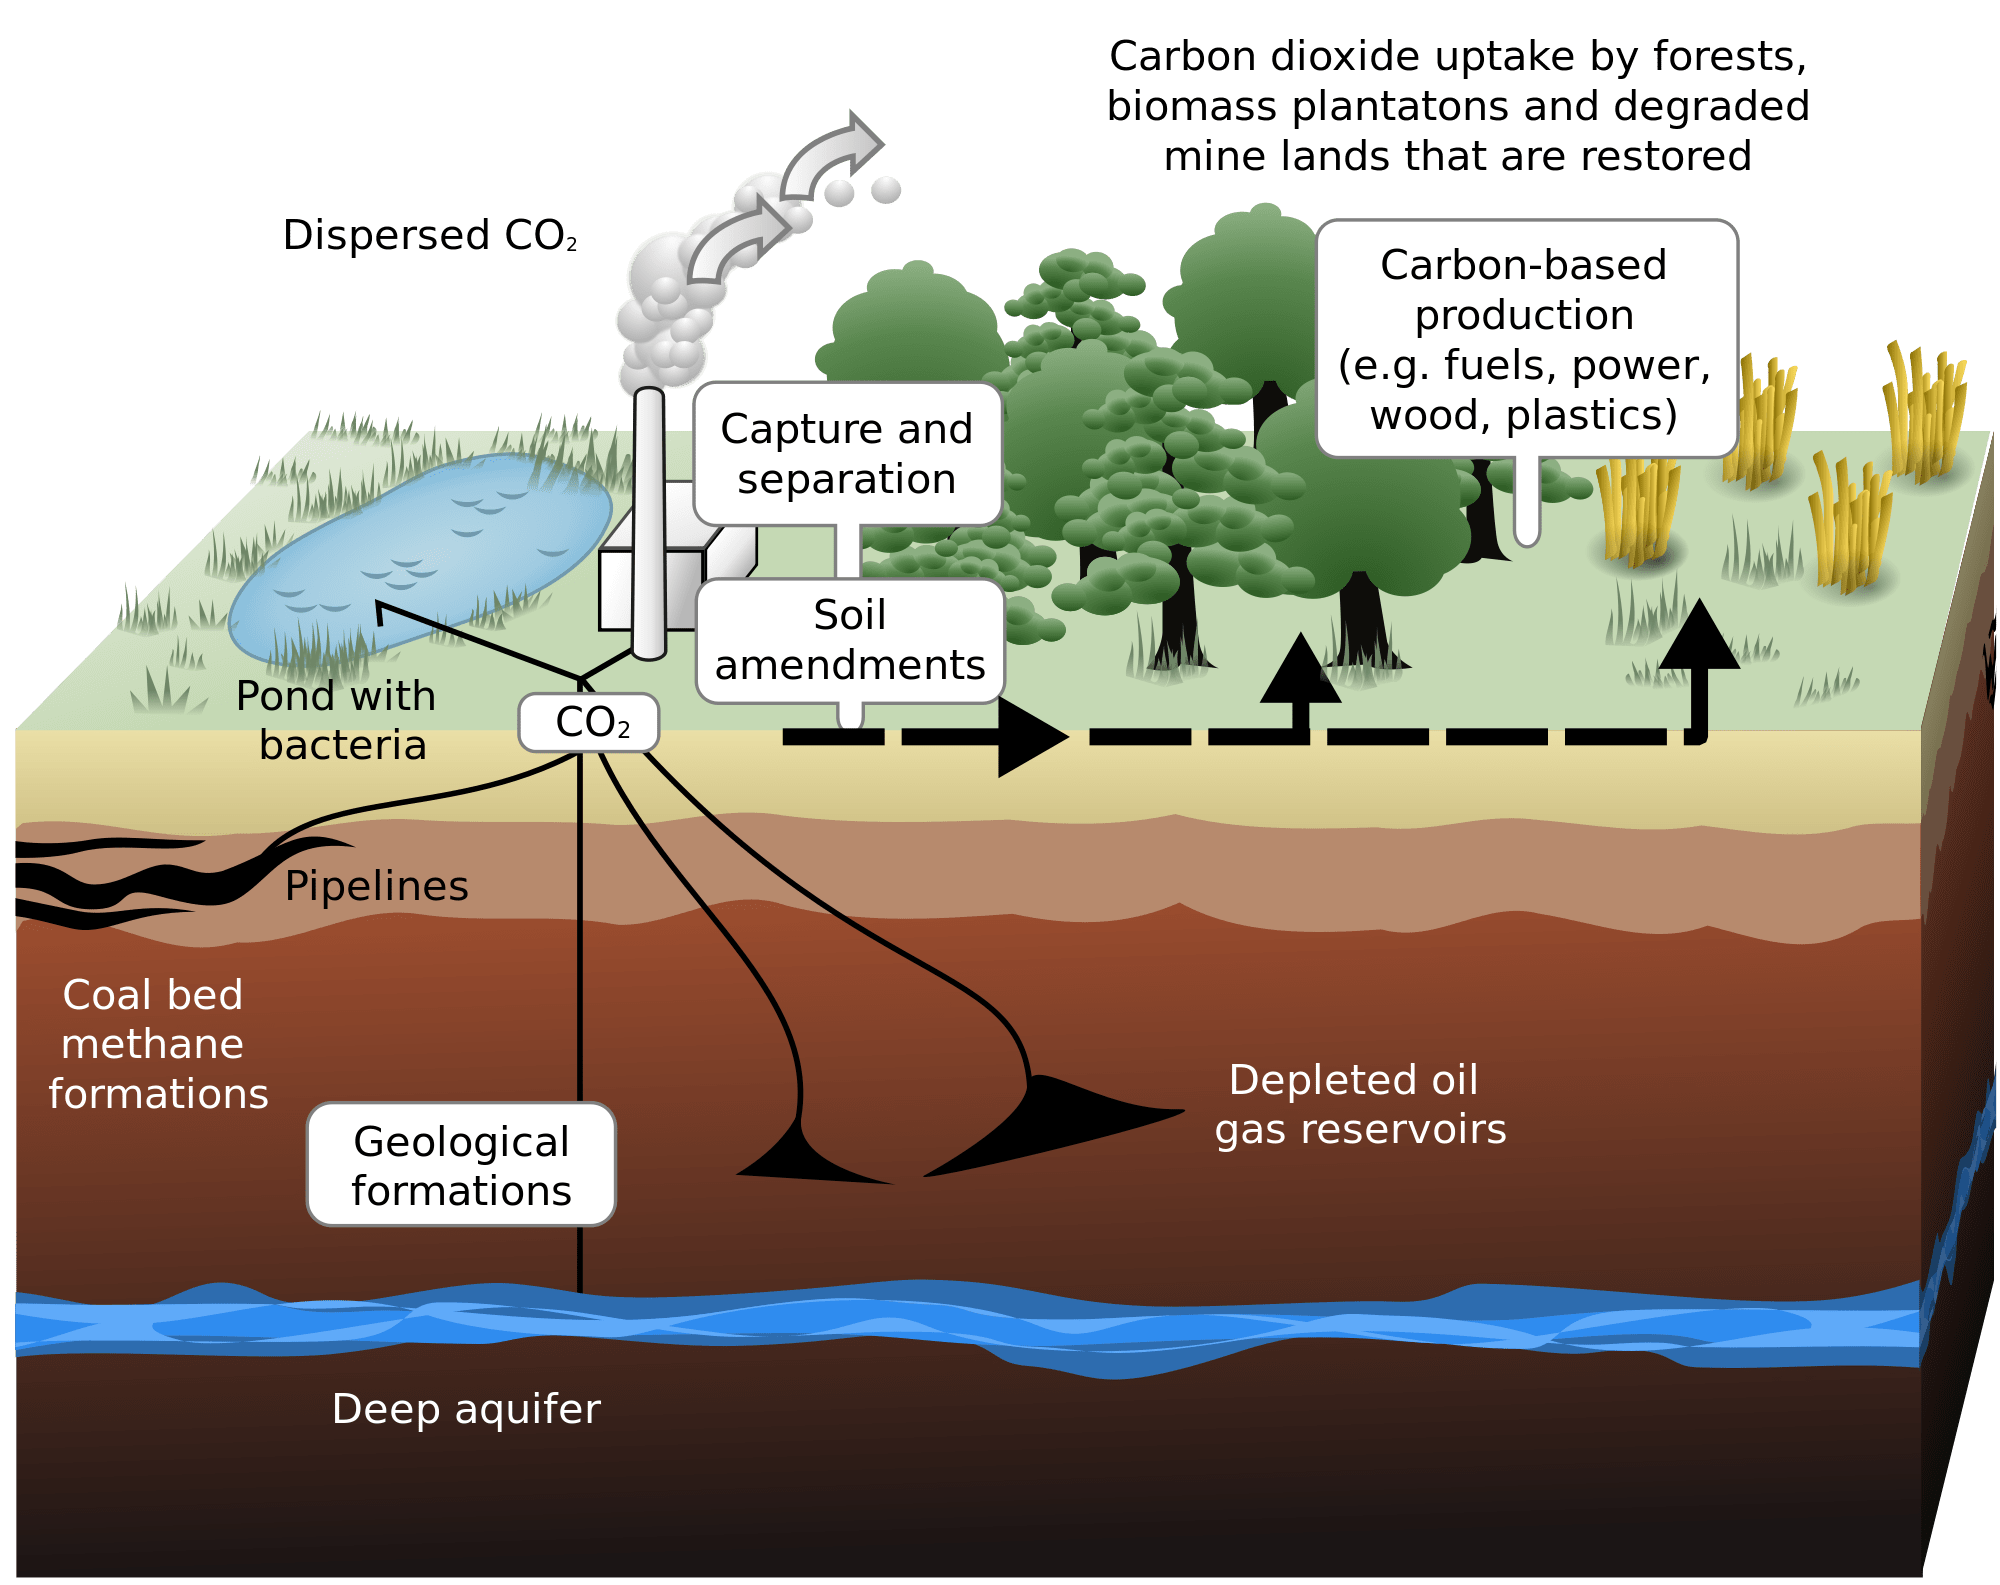 Co2 drawing smog. How does carbon capture